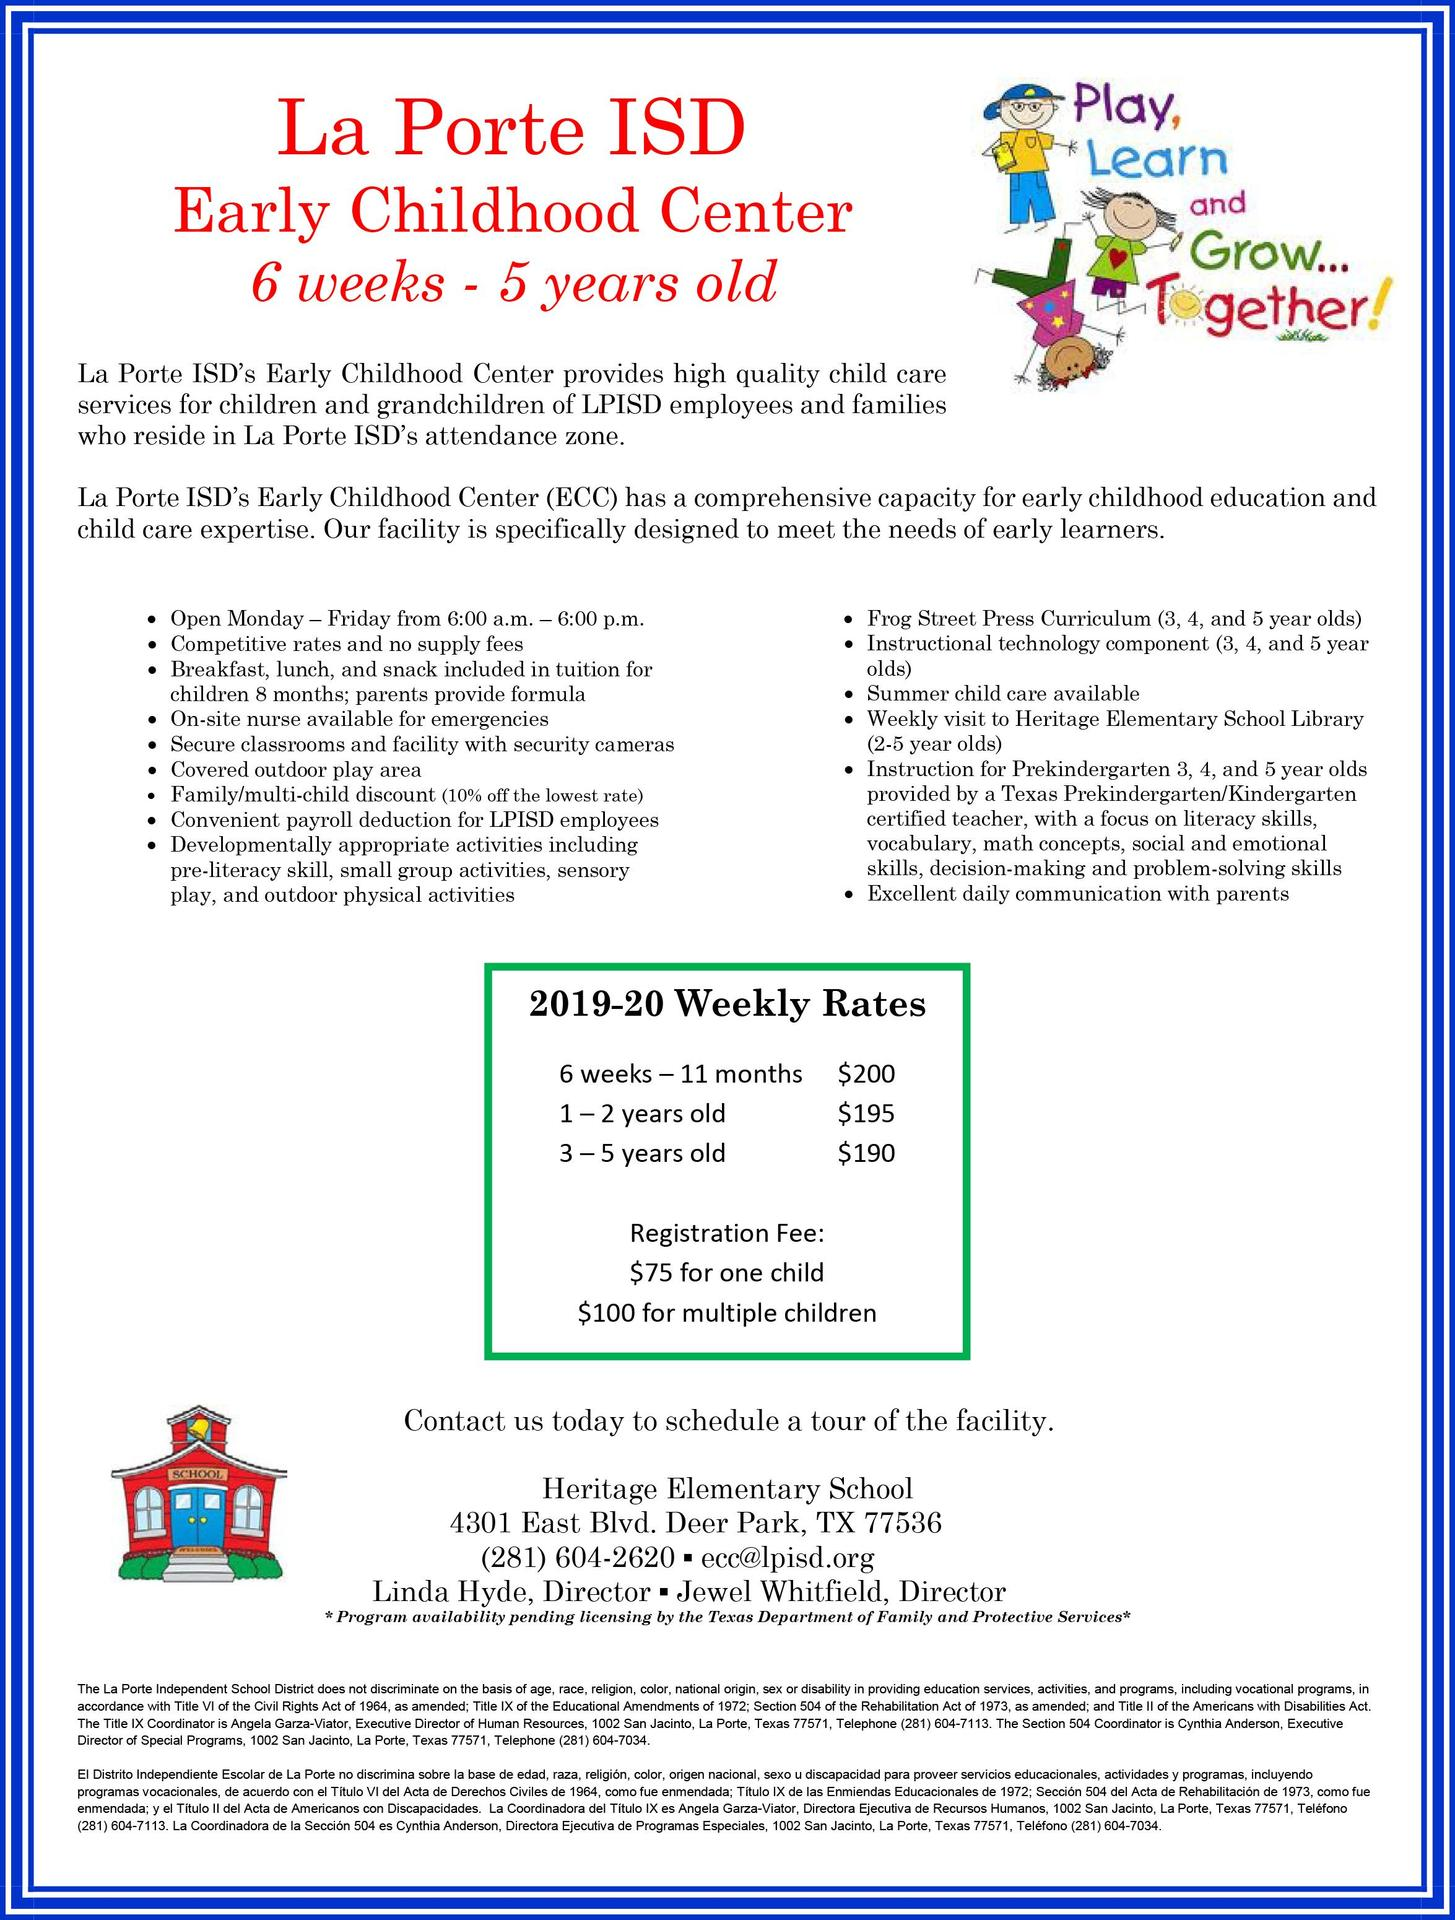 La Porte ISD Early Childhood Center